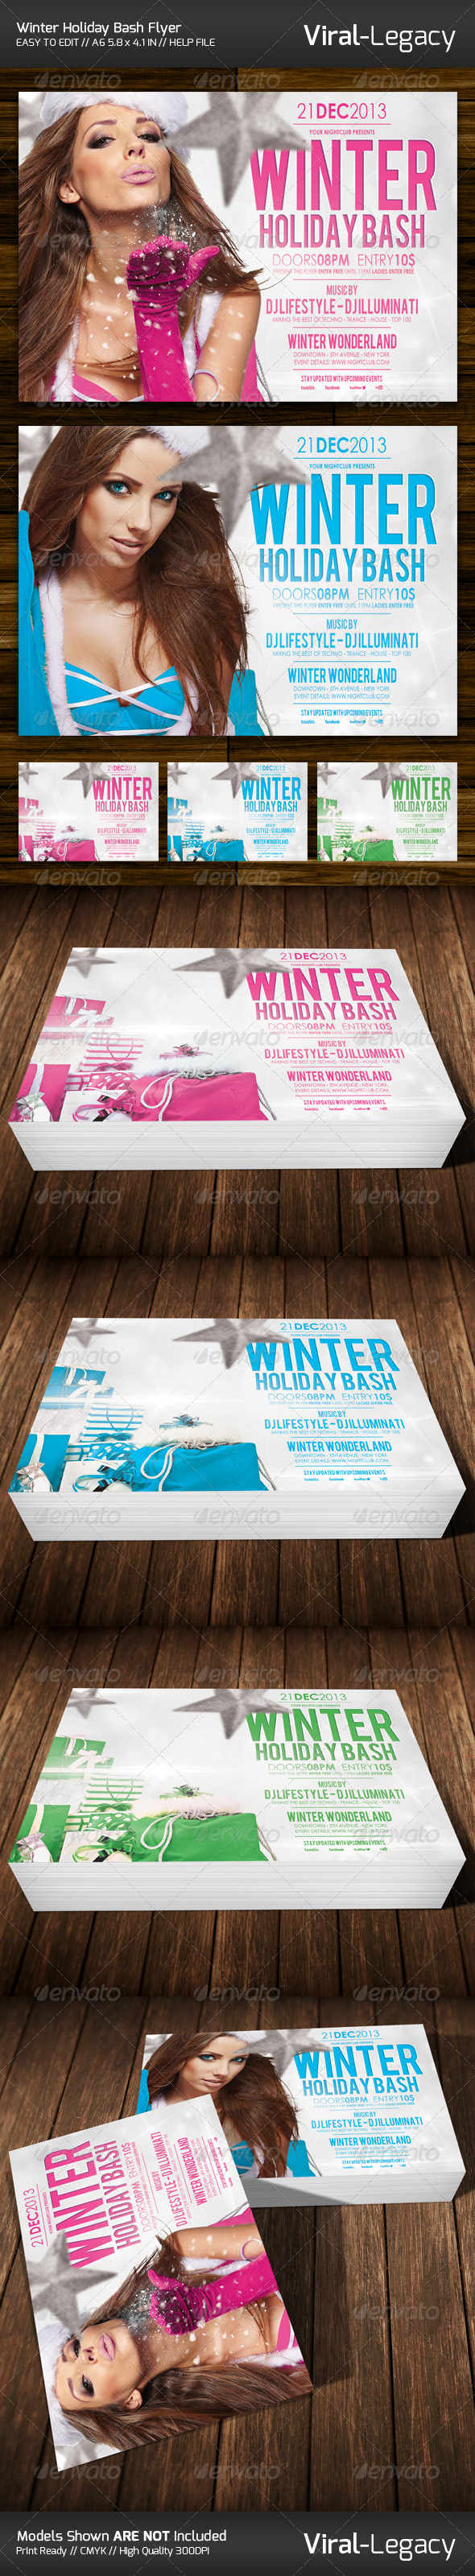 GraphicRiver Winter Holiday Bash Flyer 6405196